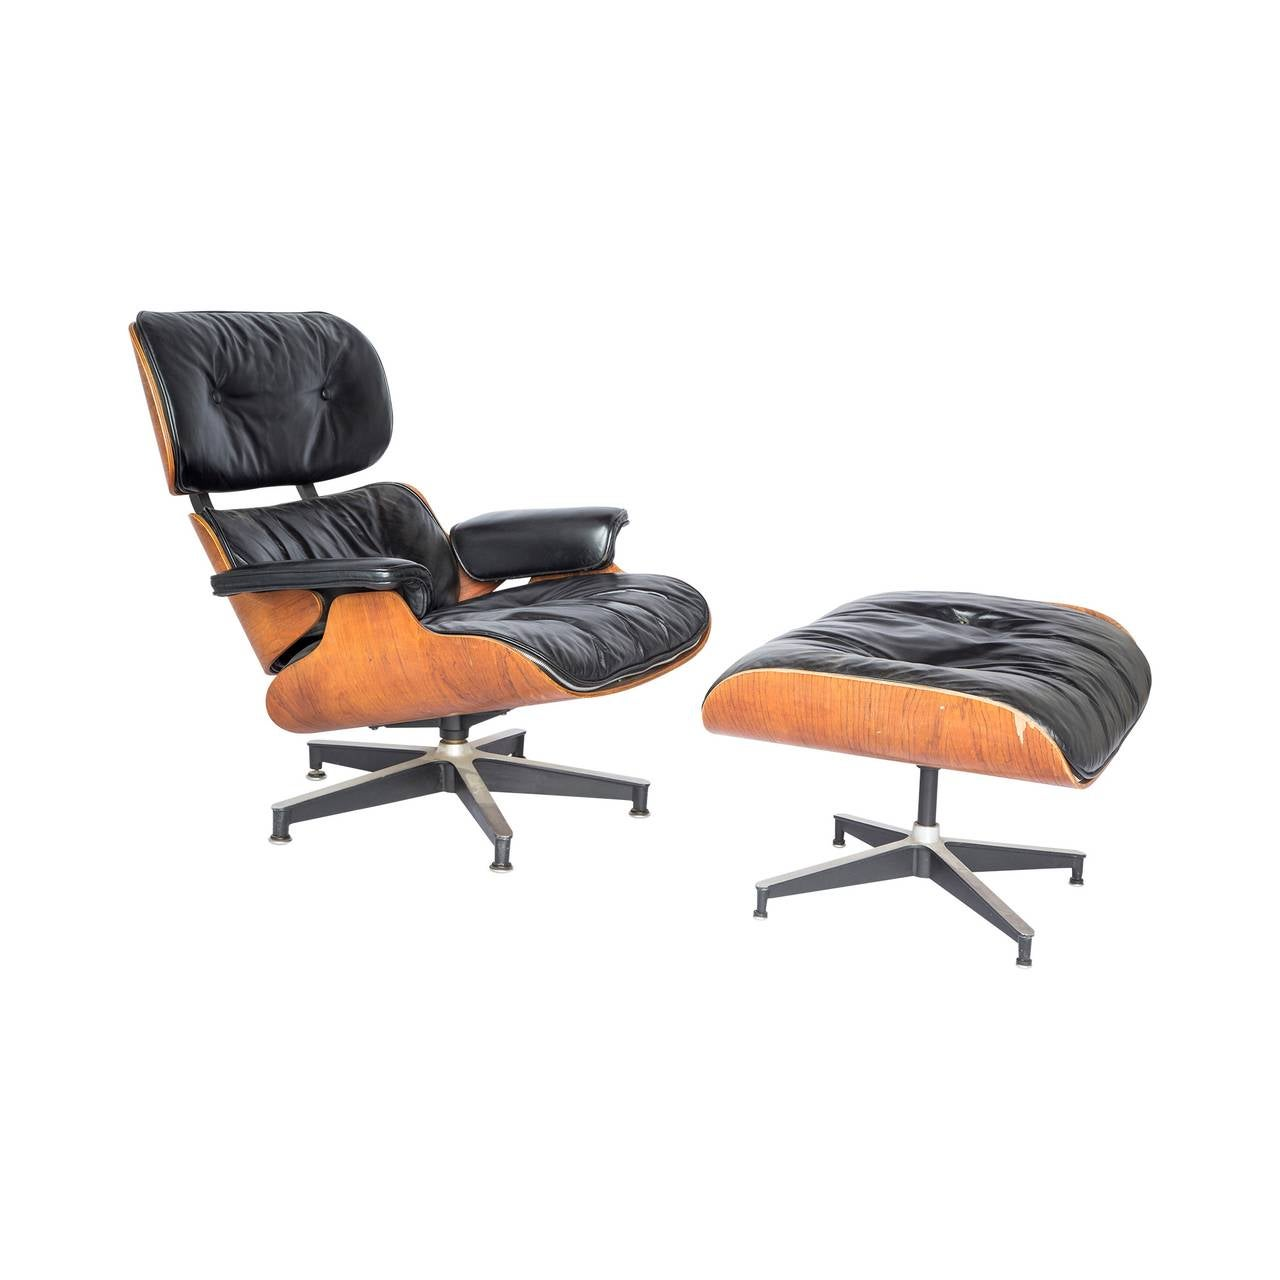 Eames Lounge Chair and Ottoman For Sale at 1stdibs